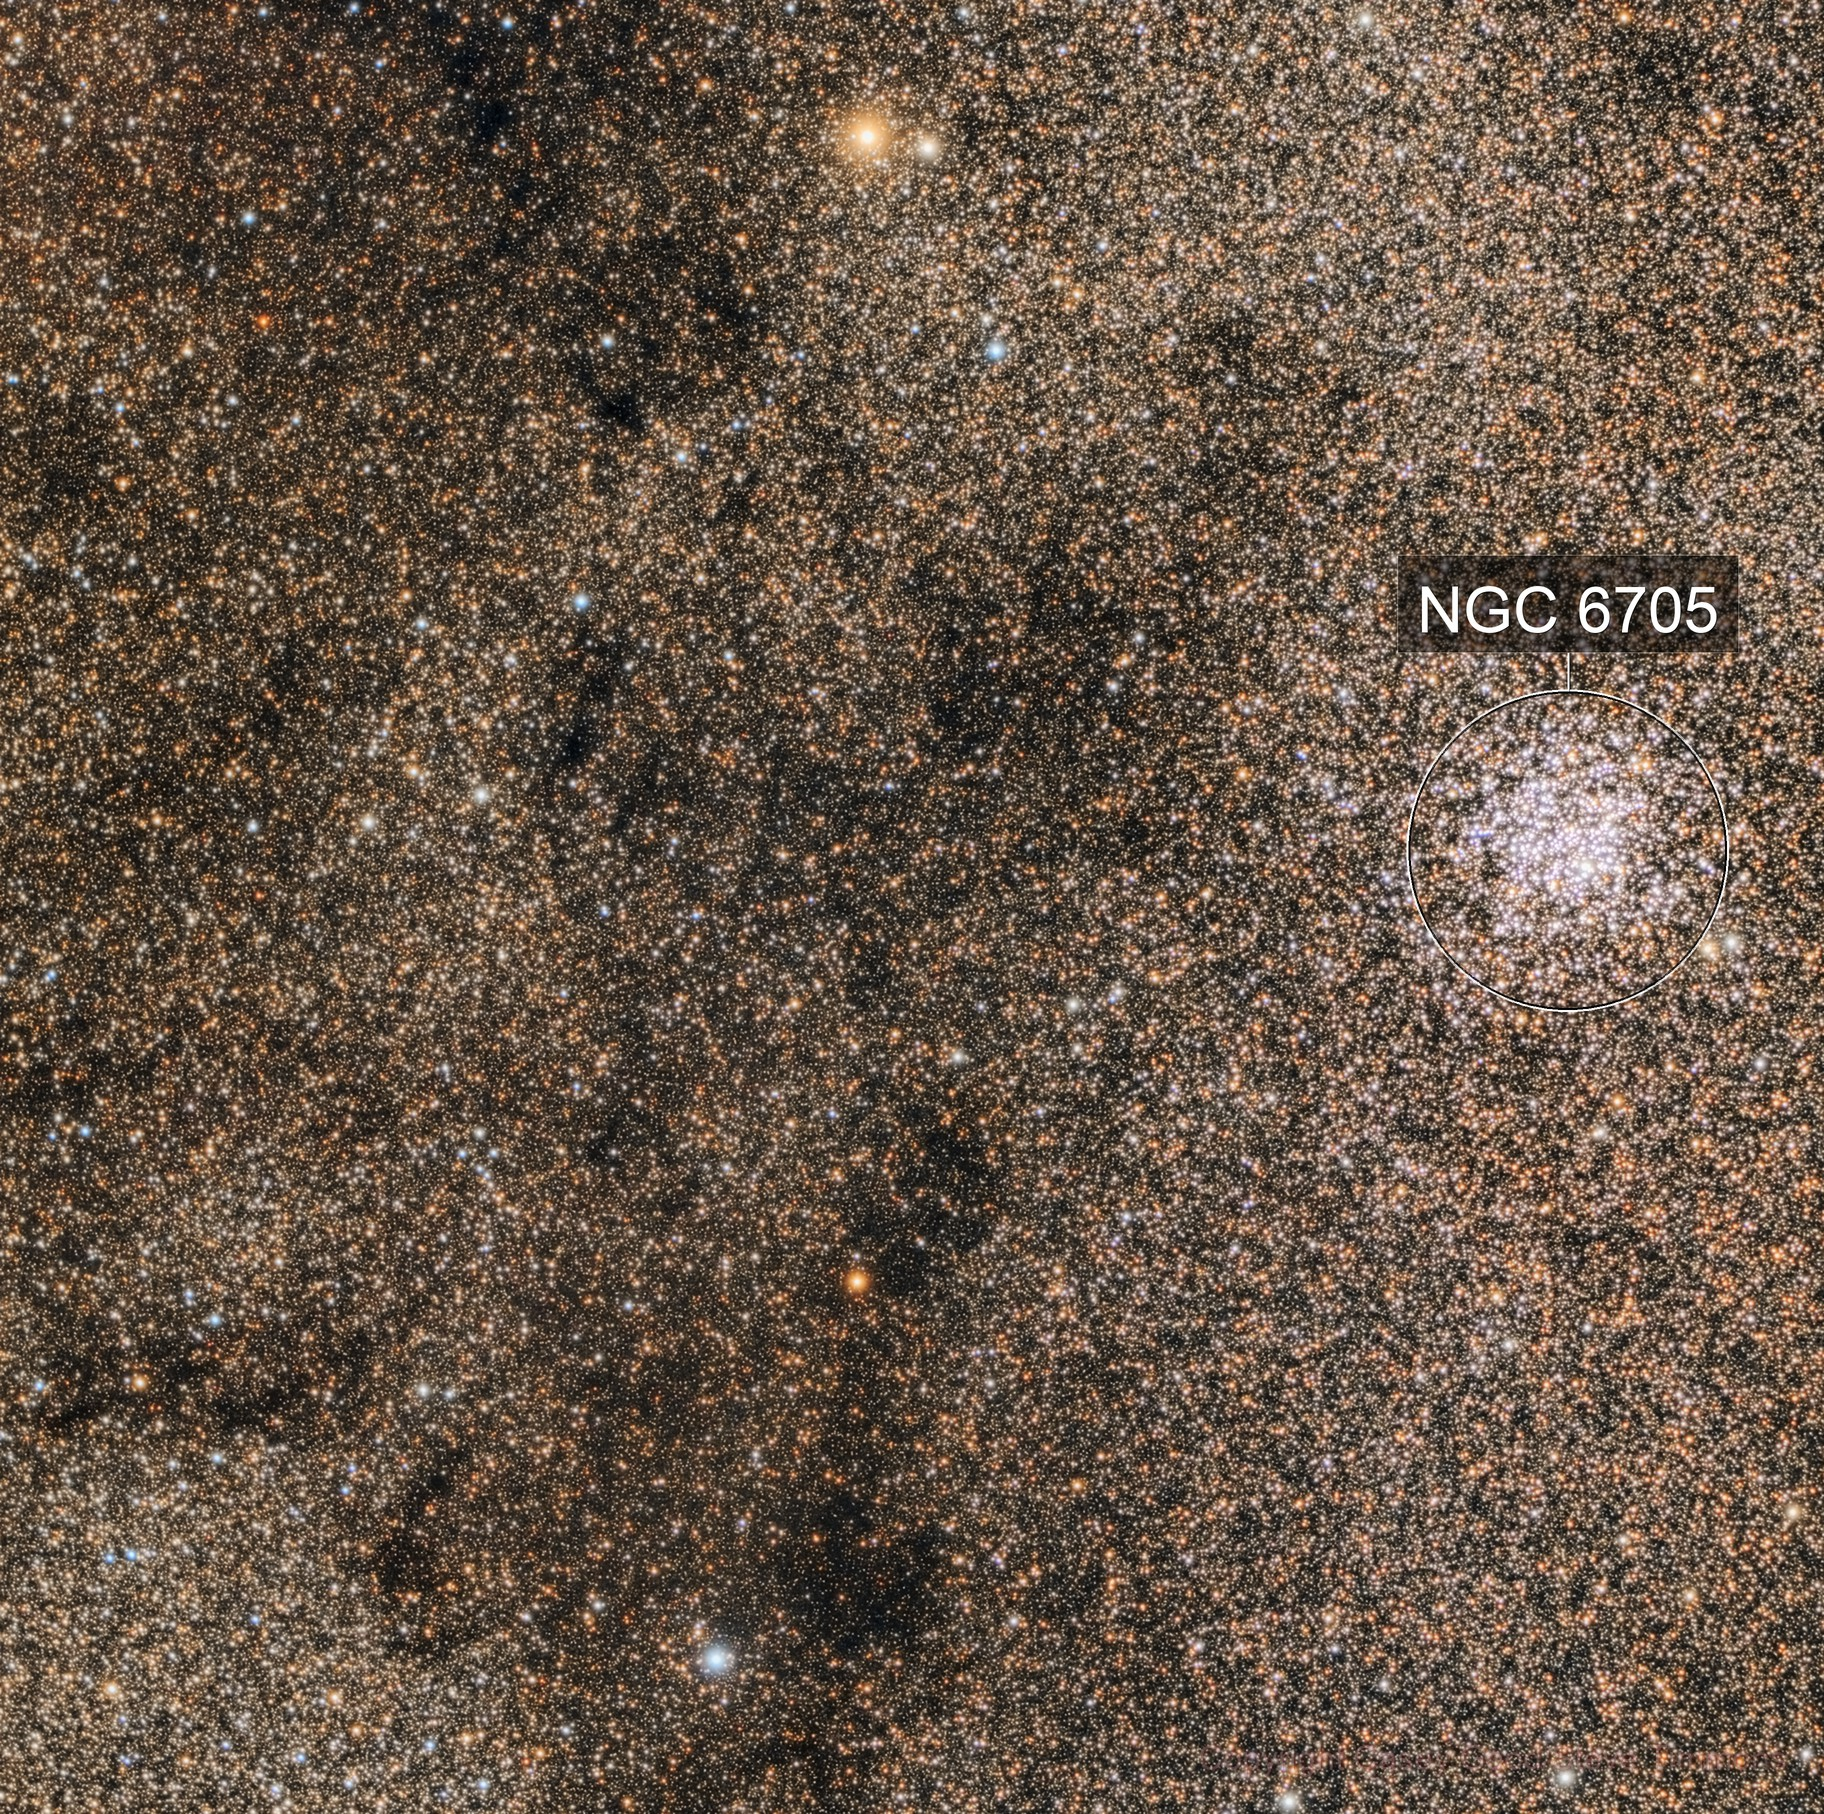 Messier 11 in a sea of stars